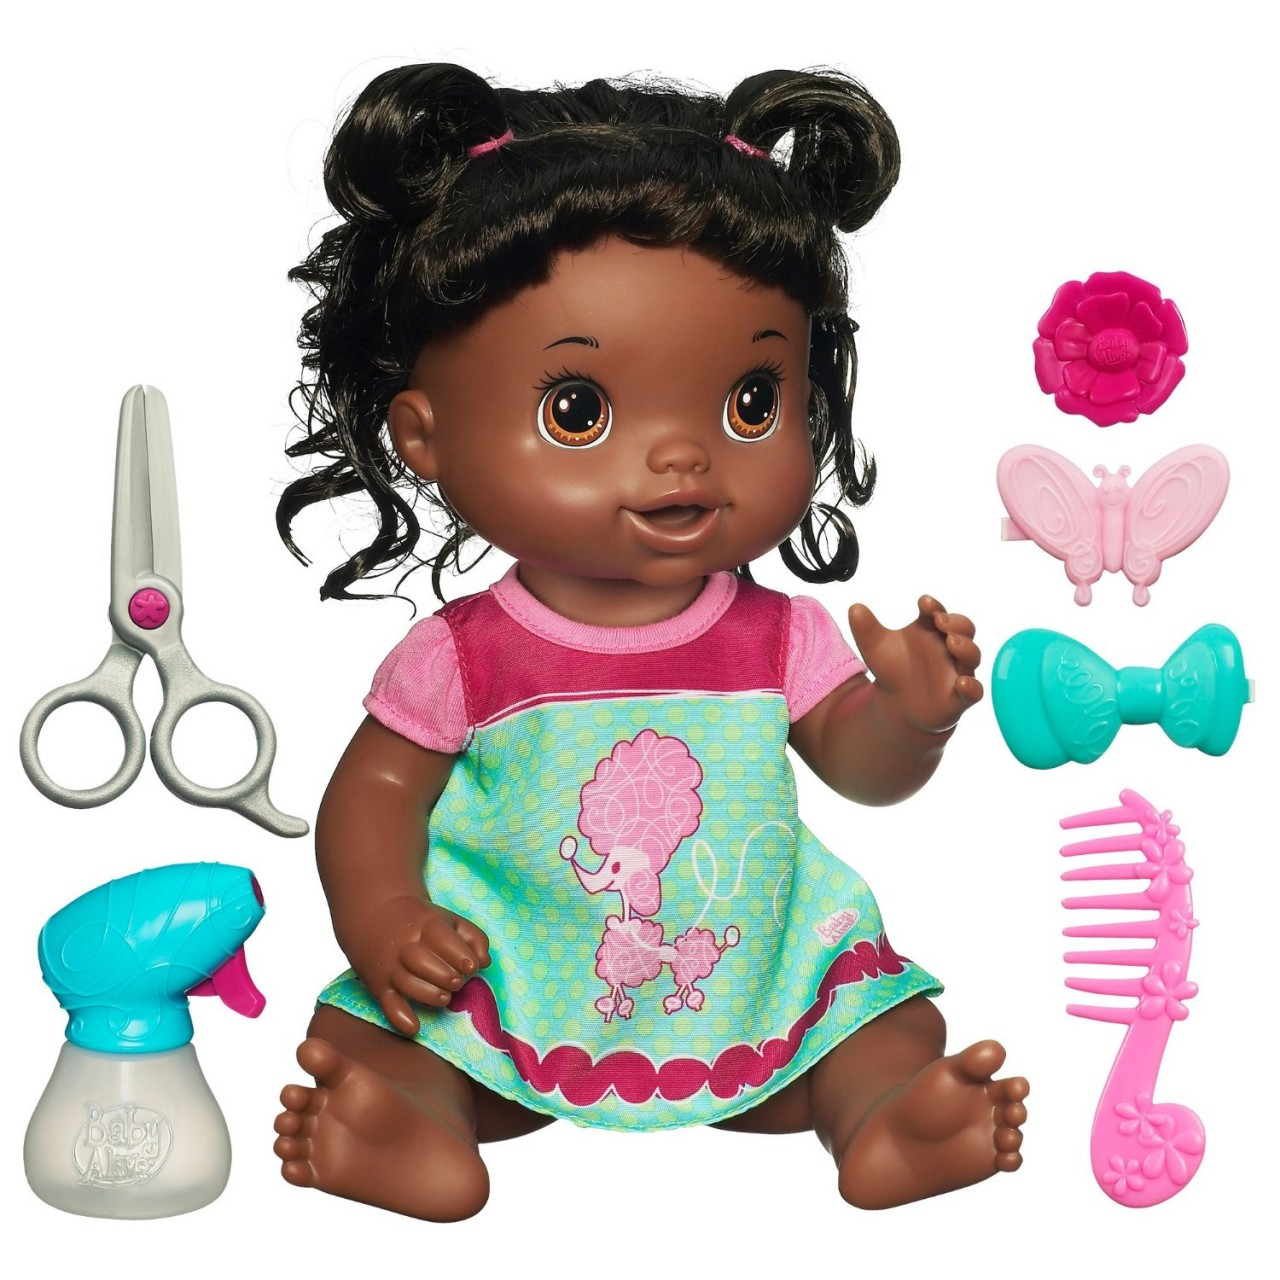 BONECA BABY ALIVE BEAUTIFUL NOW BABY DOLL - AFRICAN AMERICAN